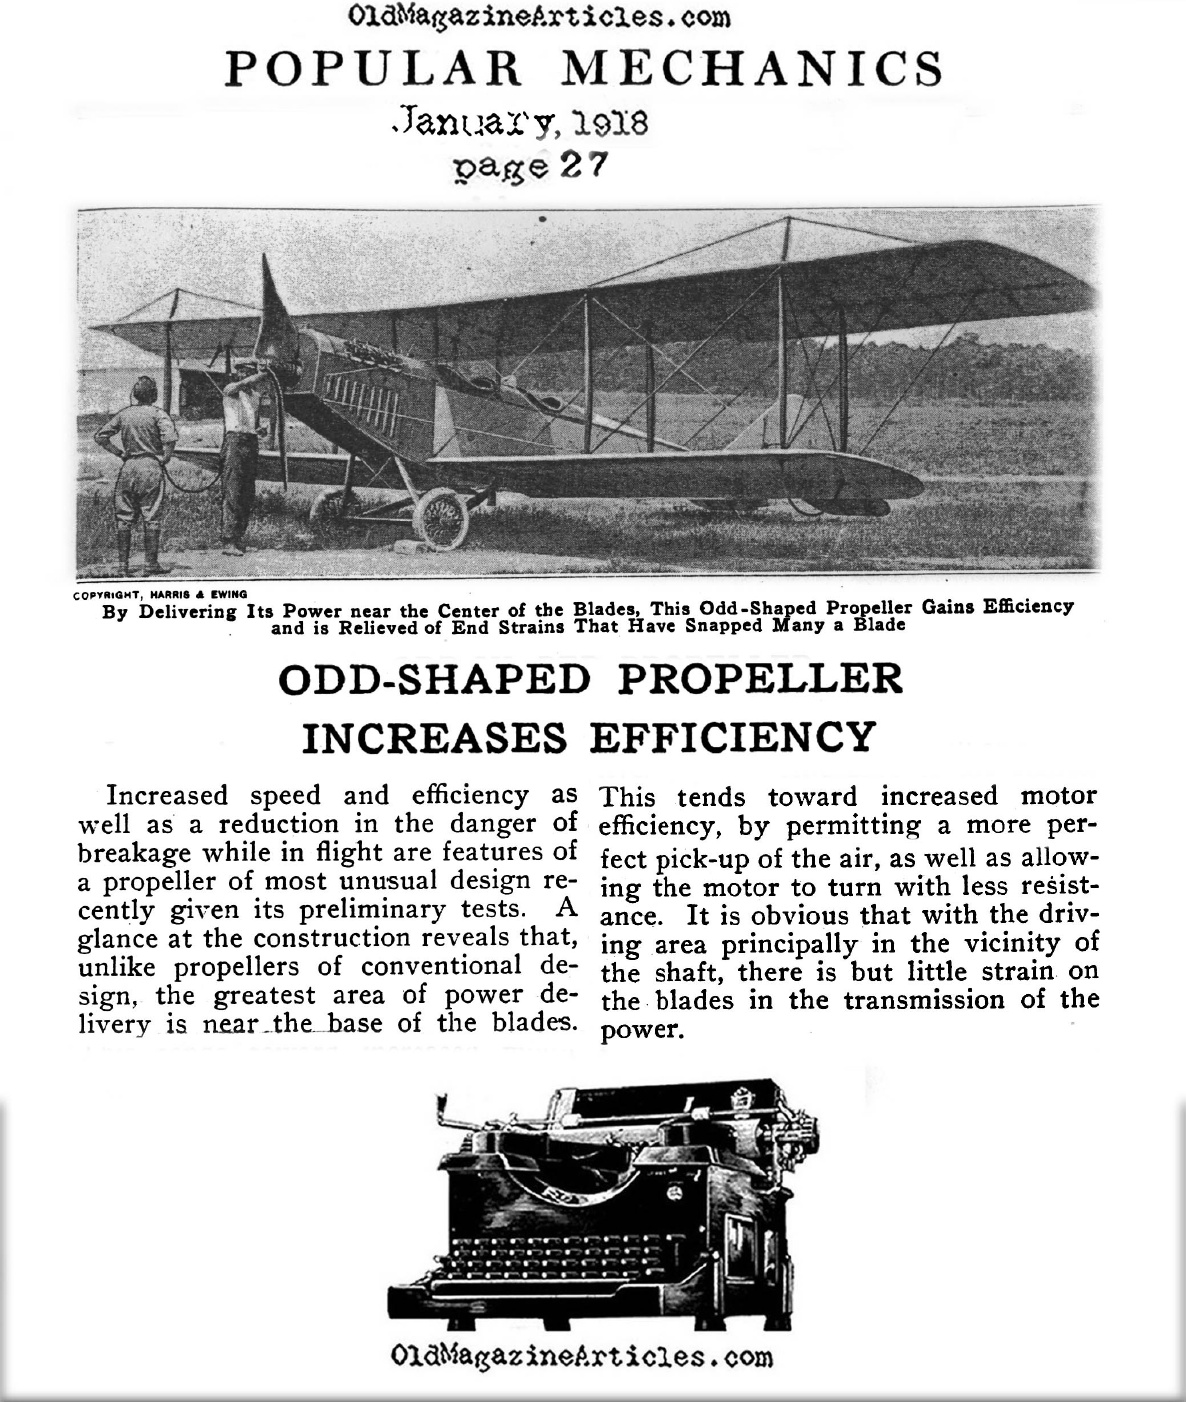 Odd-Shaped Propeller More Efficient  (Popular Mechanics, 1918)